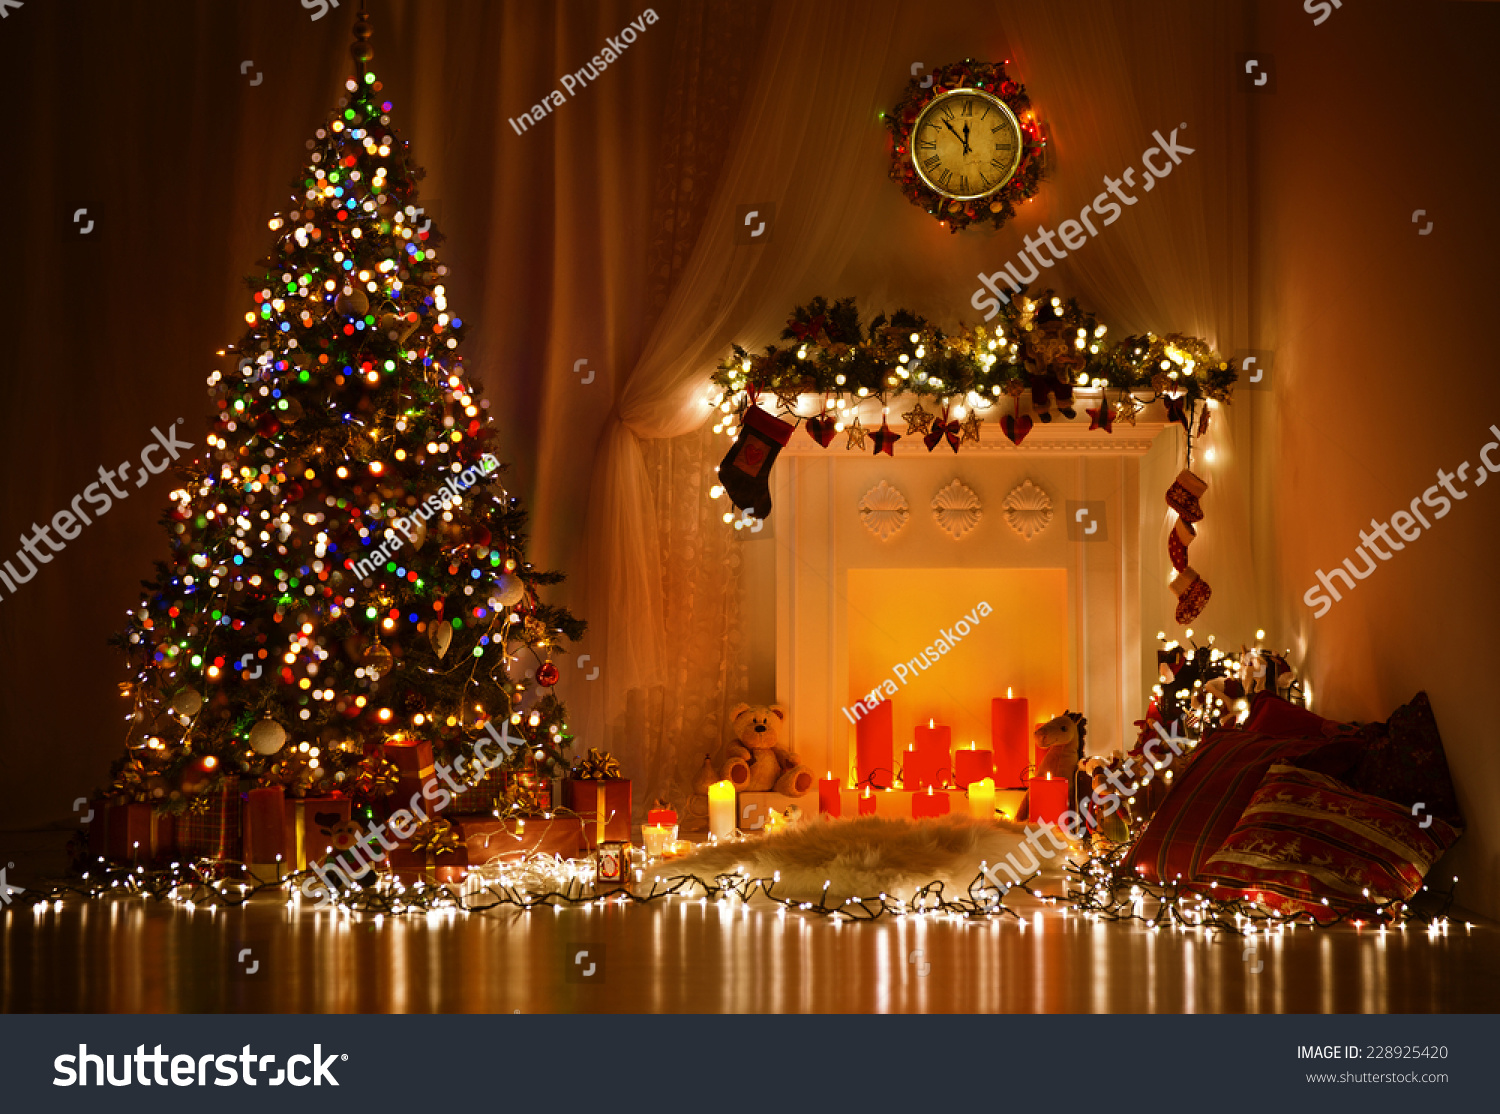 Christmas Interior Design Christmas Room Interior Design Xmas Tree Decorated By